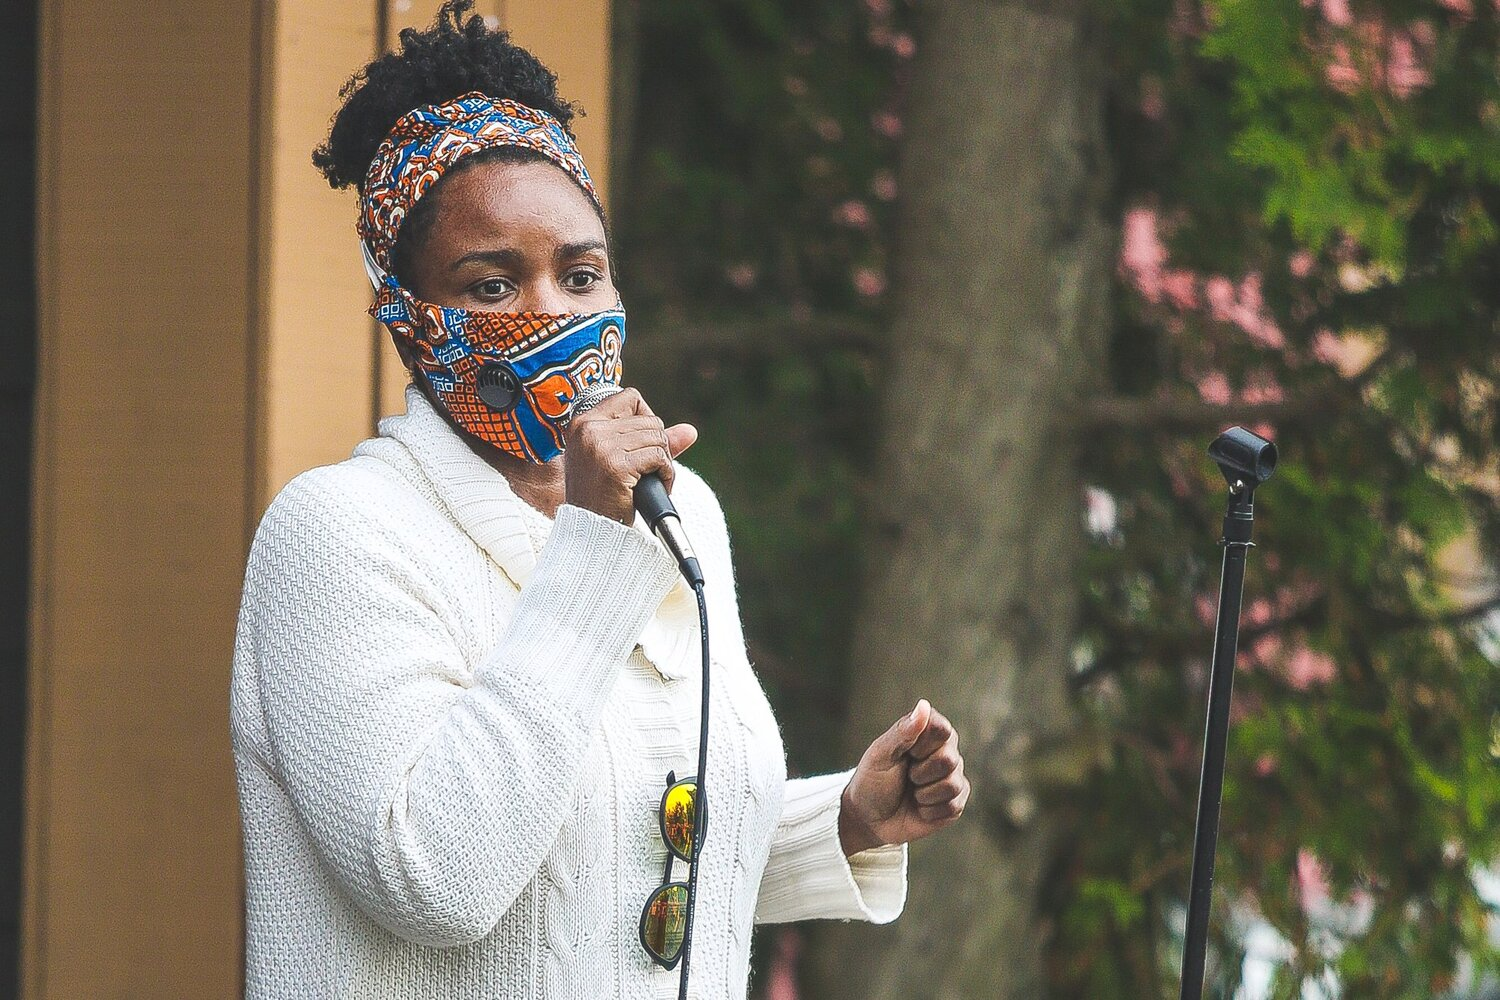 Nicky Hylton-Patterson spoke at the Black Lives Matter rally in Saranac Lake earlier this month. Photo: courtesy Heather Gallaher (Perkins)